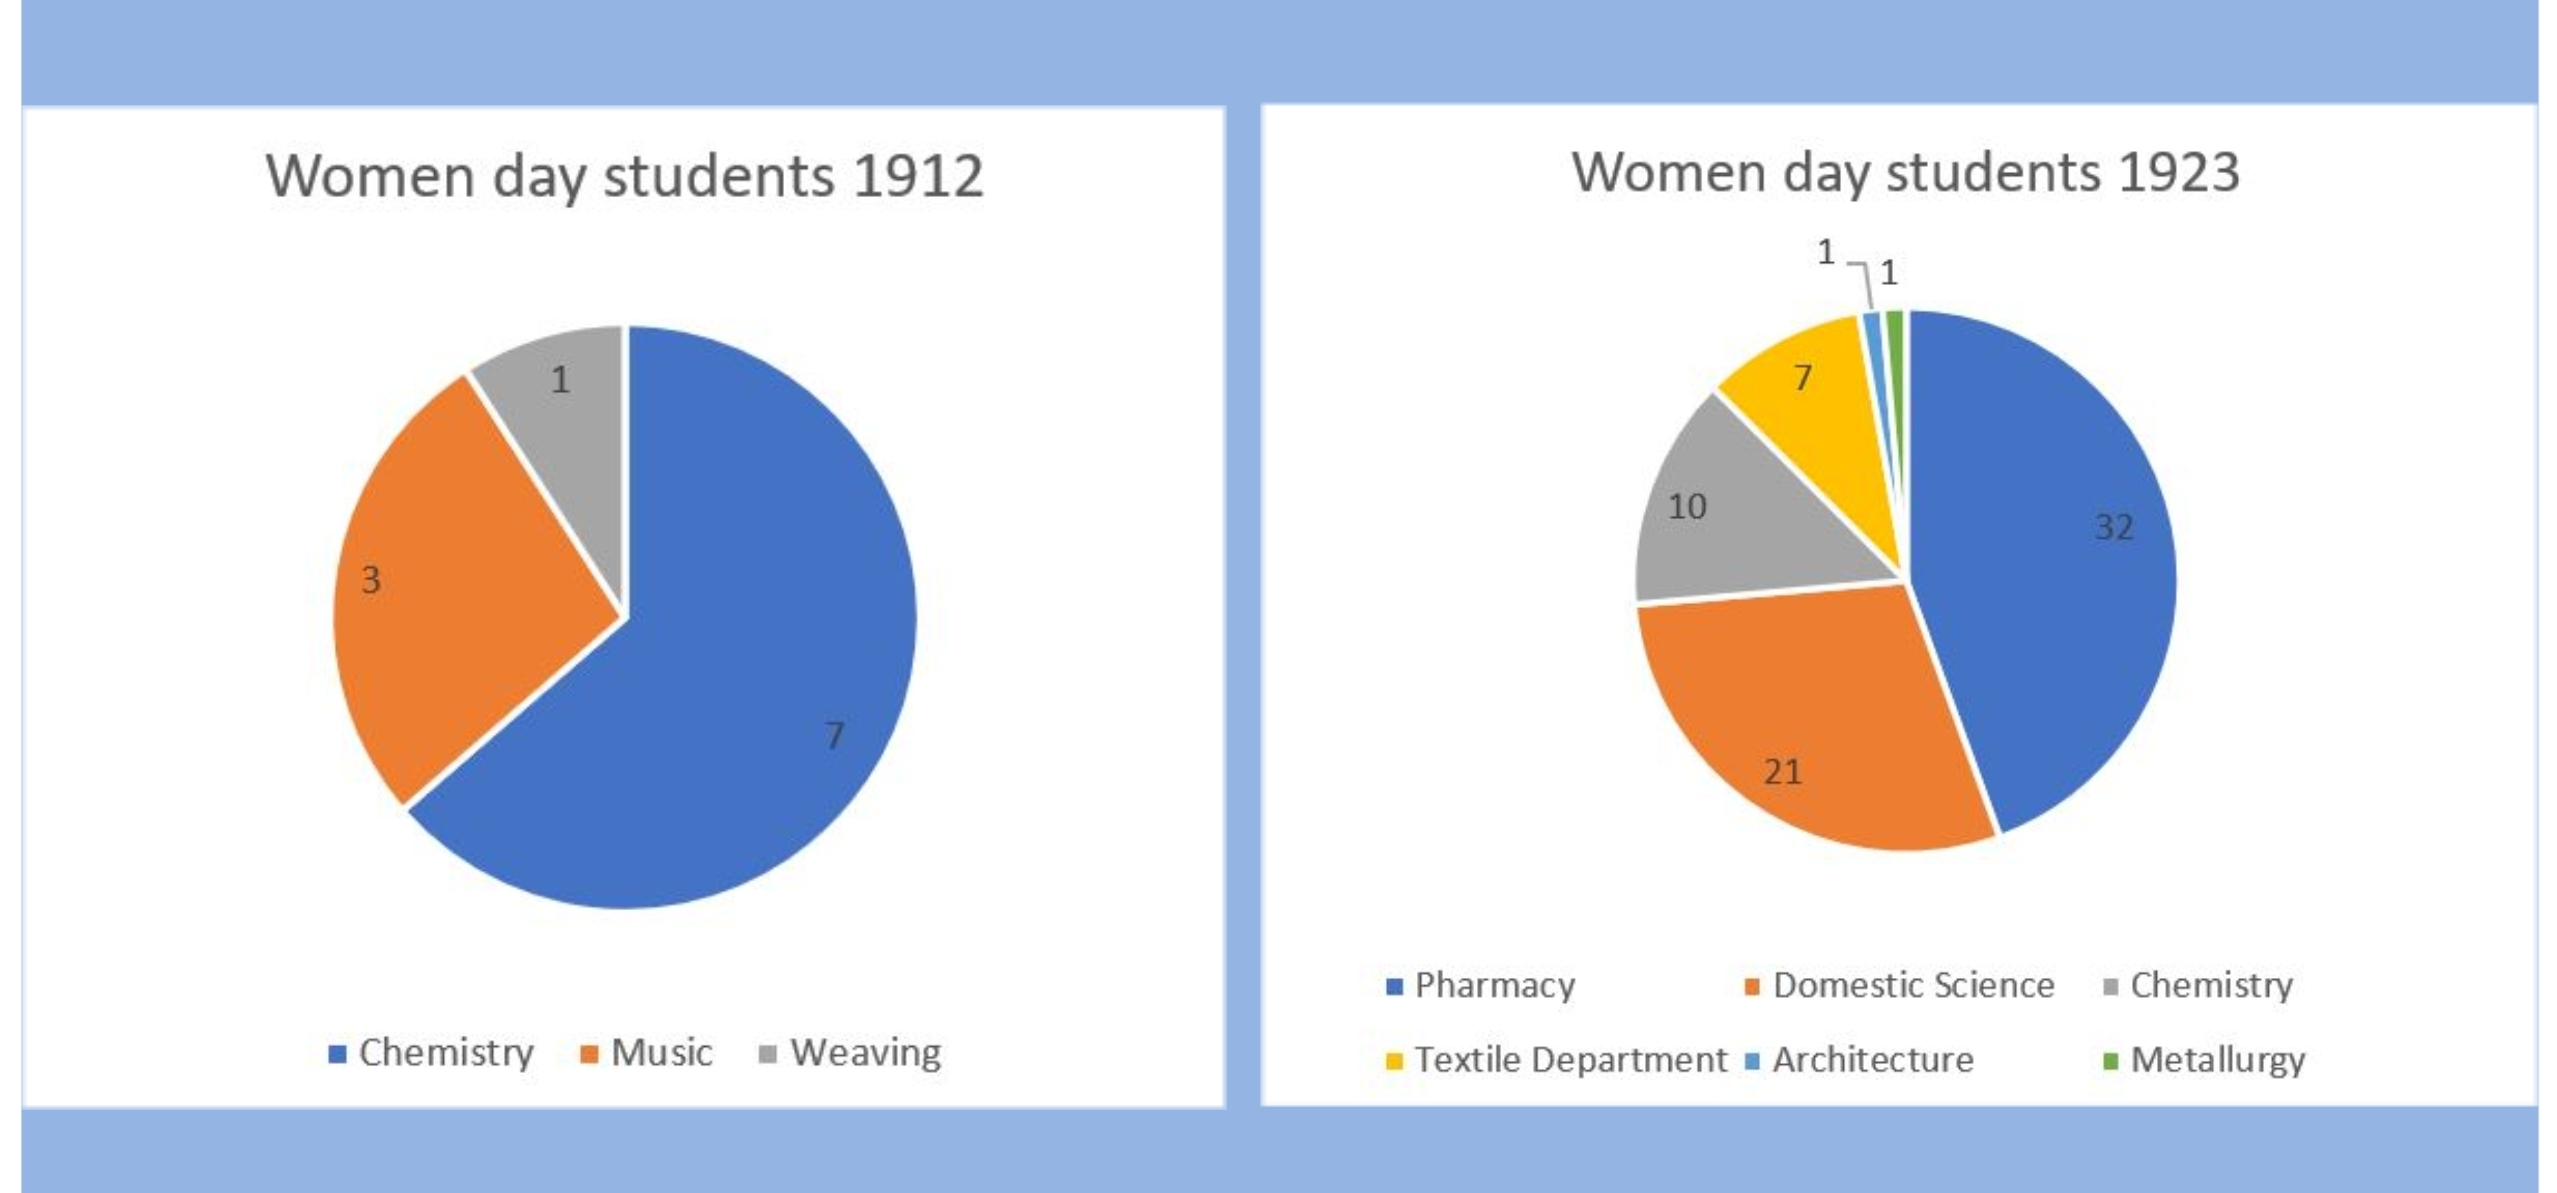 Image shows two pie charts representing the numbers of women studying particular subjects in two different years. Table one is labelled 'Women day students 1912' and shows that 7 women studied Chemistry, 3 studied Music and 1 studied Weaving. Table two is labelled 'Women day students 1923' and shows that 32 women studied Pharmacy, 21 studied Domestic Science, 10 studied Chemistry, 7 studied in the Textile Department, 1 studied Architecture and 1 studied Metallurgy.